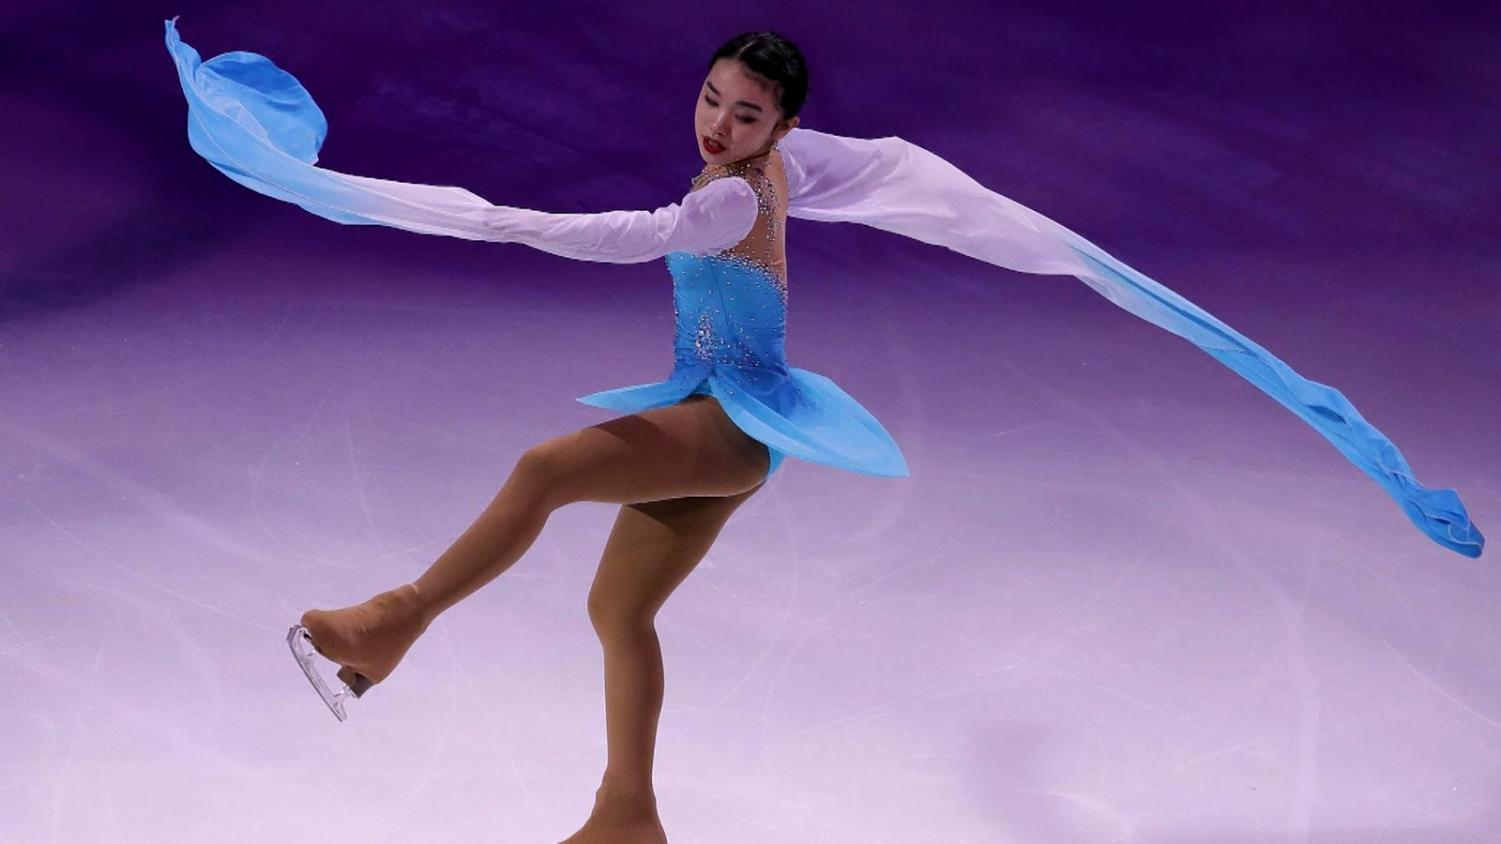 Karen Chen, a figure skater from Fremont, is set to compete in the 2018 Winter Olympics.